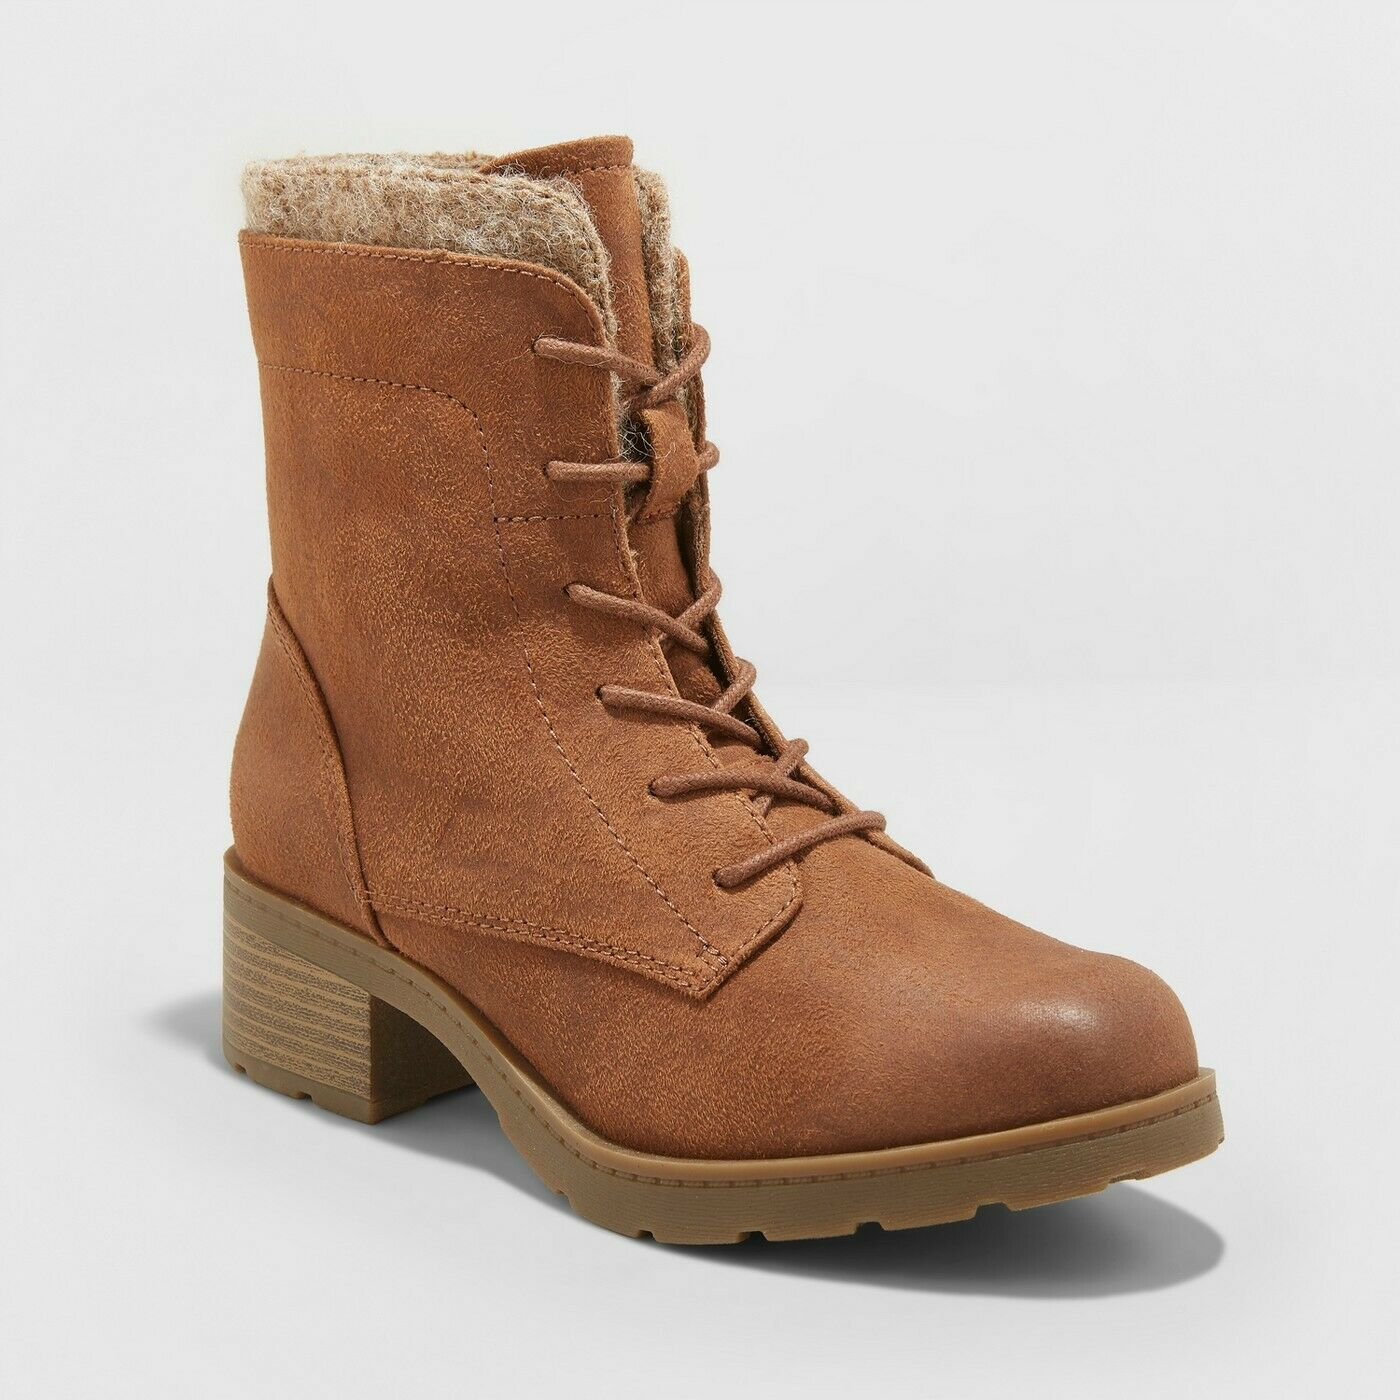 Women's Dez Lace Up Hiker Boots - Universal Thread, Brand New